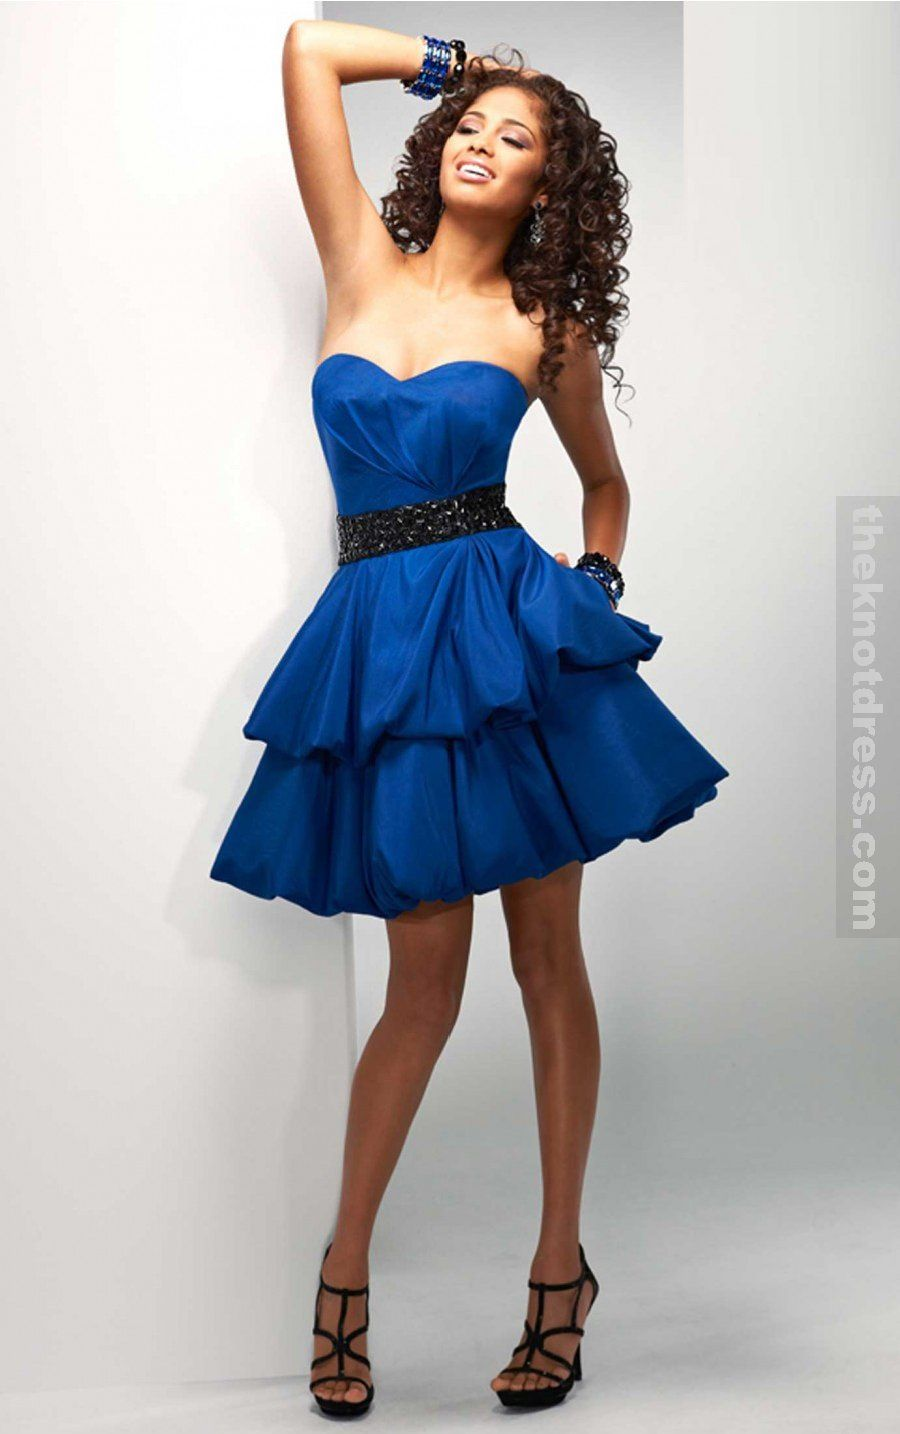 10 Best images about Blue Dresses on Pinterest - Blue ball gowns ...